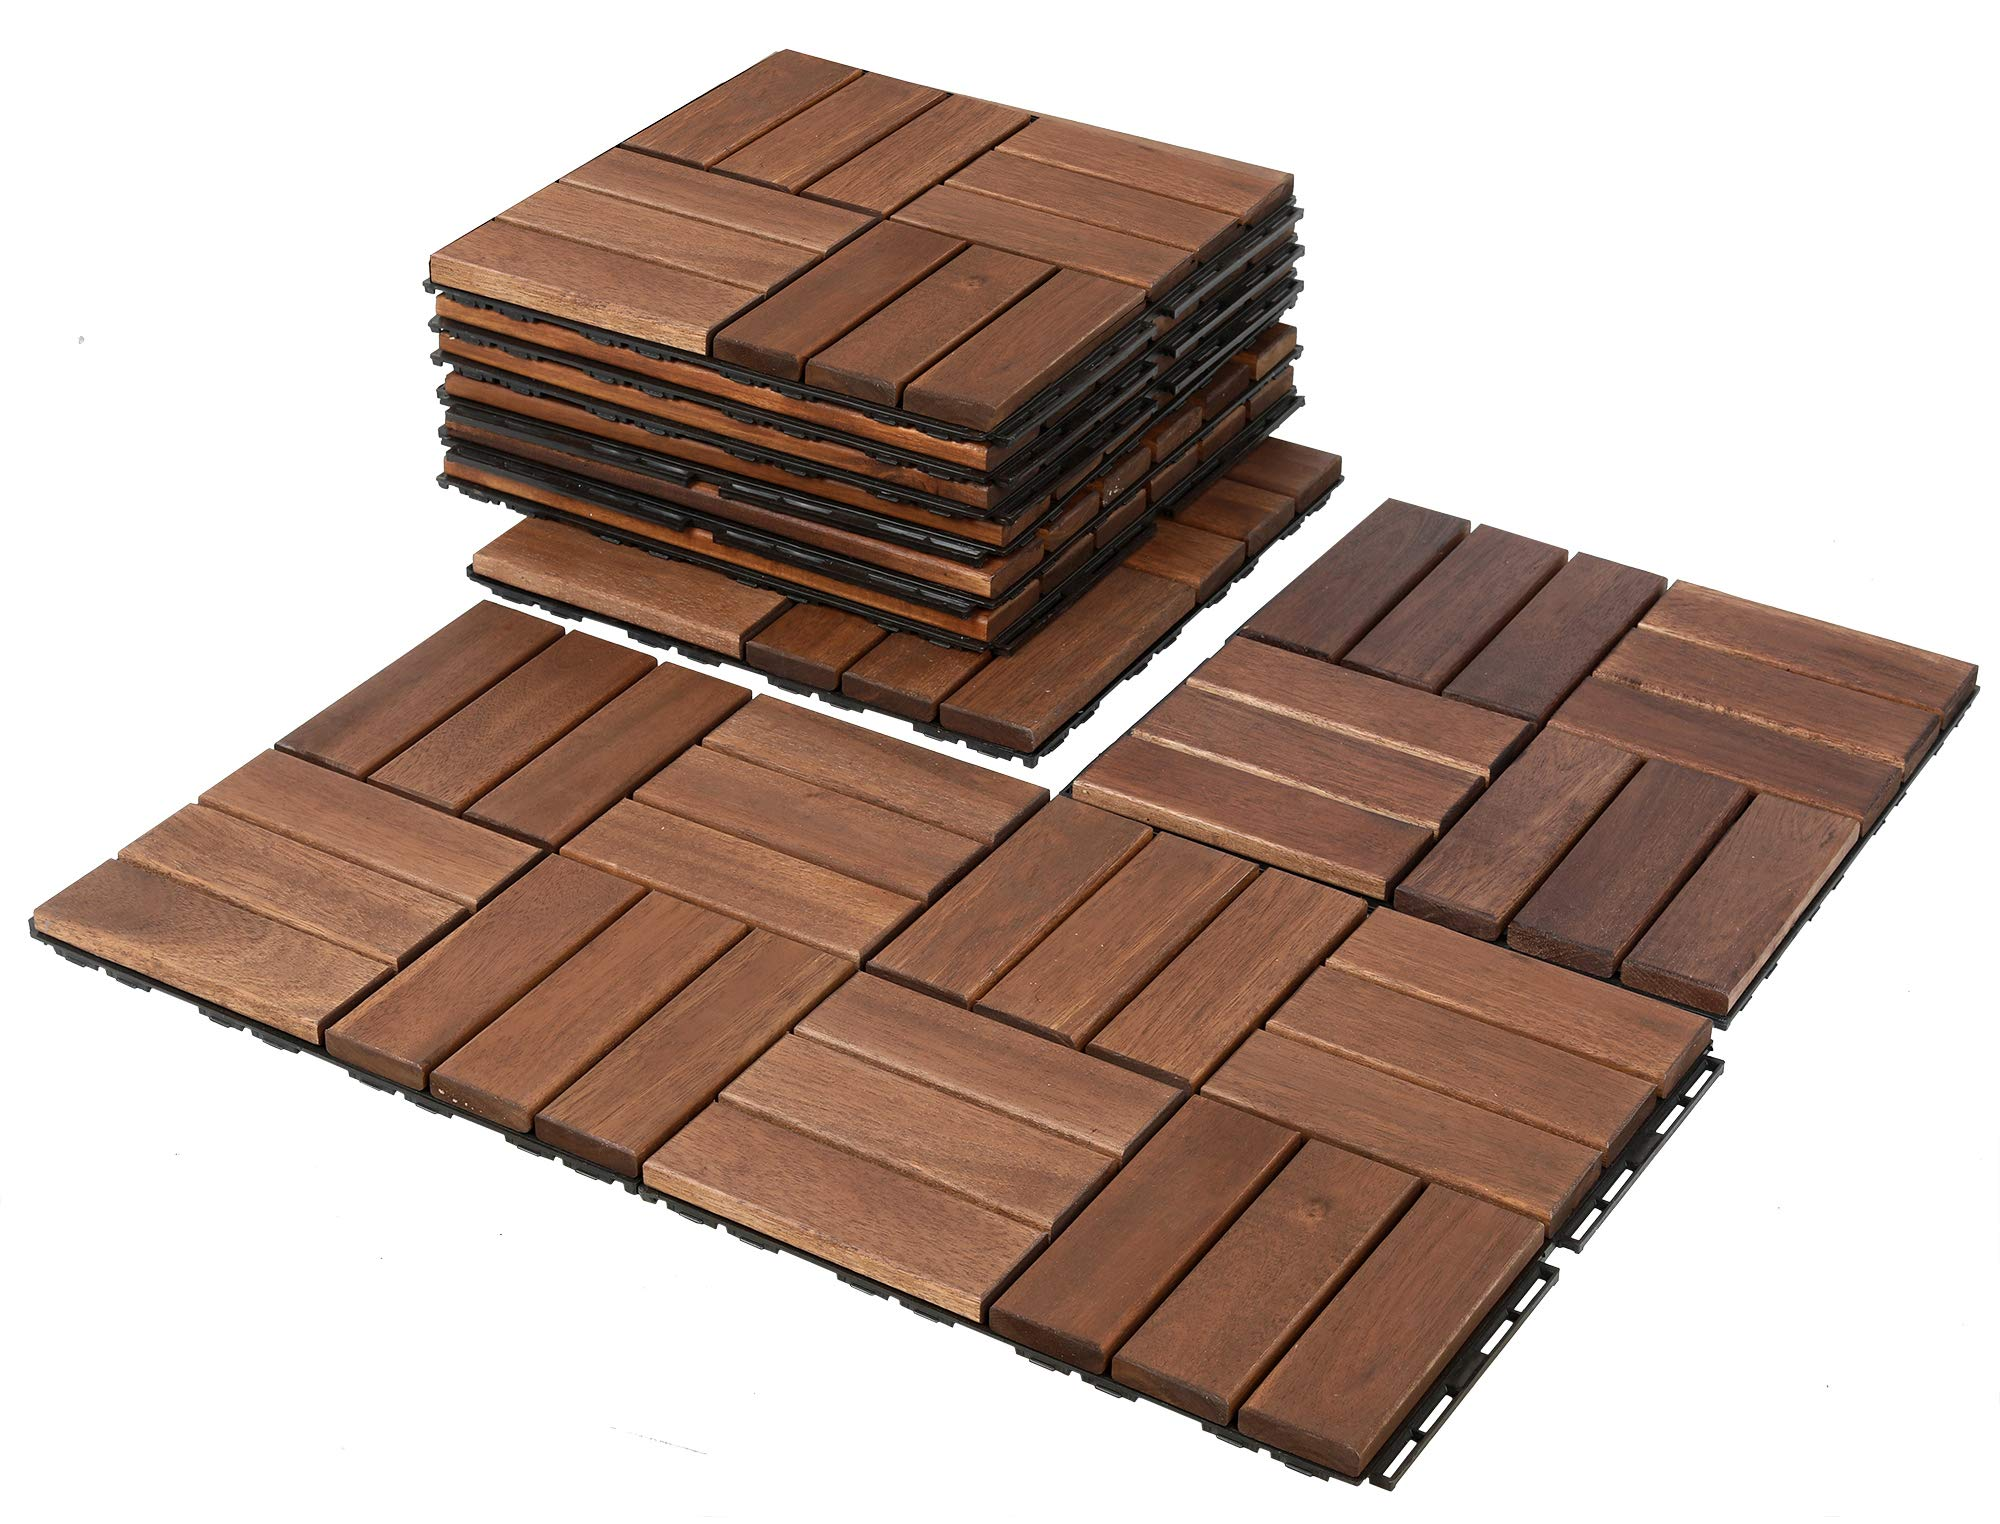 Composite Decking B07H9S8DZZ/